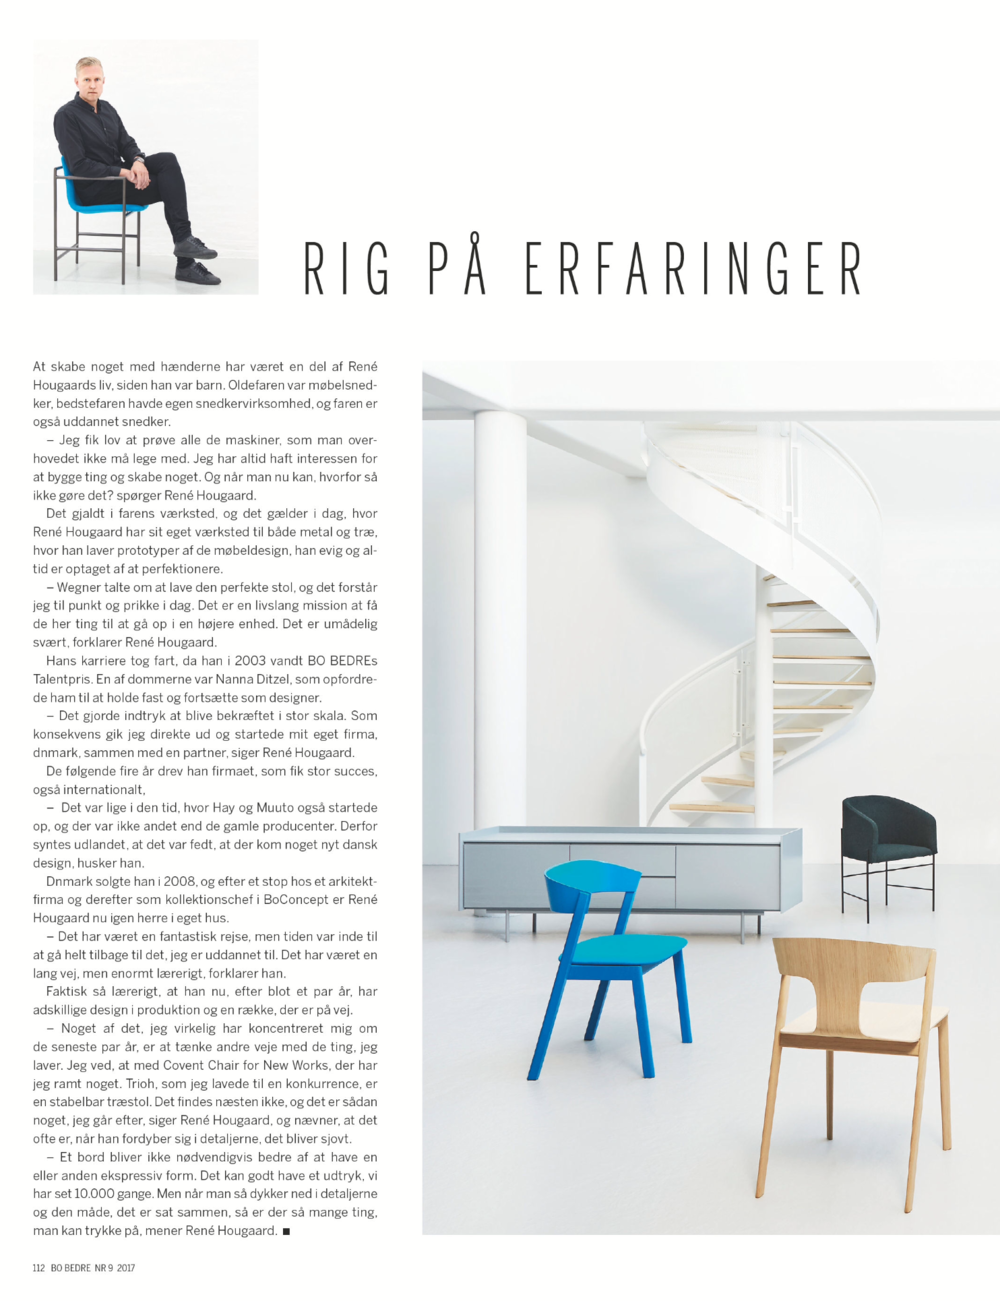 An article in Bo Bedre about ARDE the designer of Covent Chair.